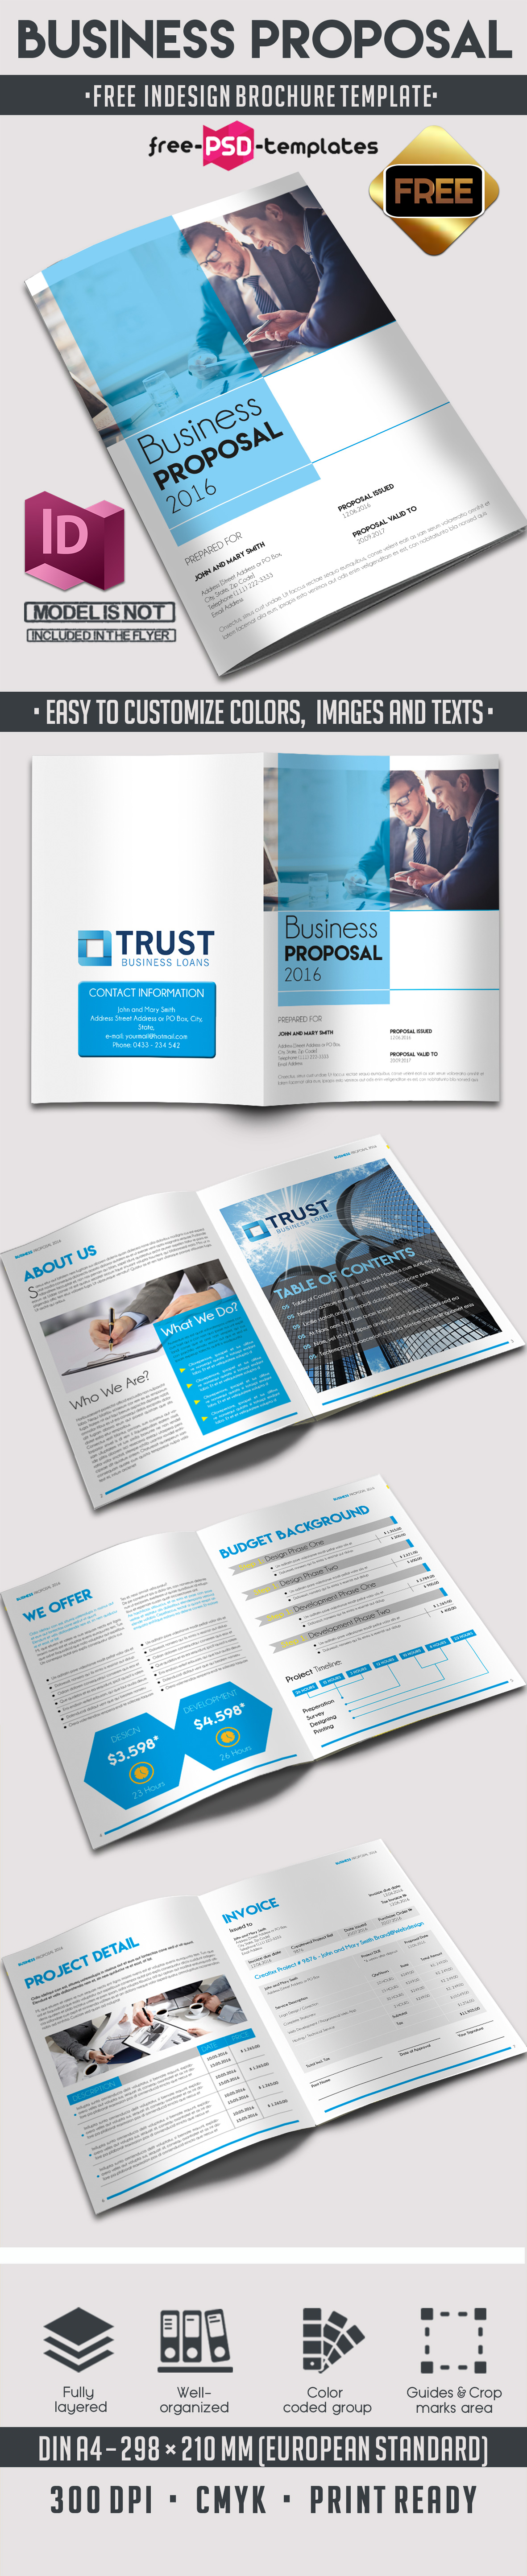 Bigpreview_free-business-proposal-brochure-8-pages-a4